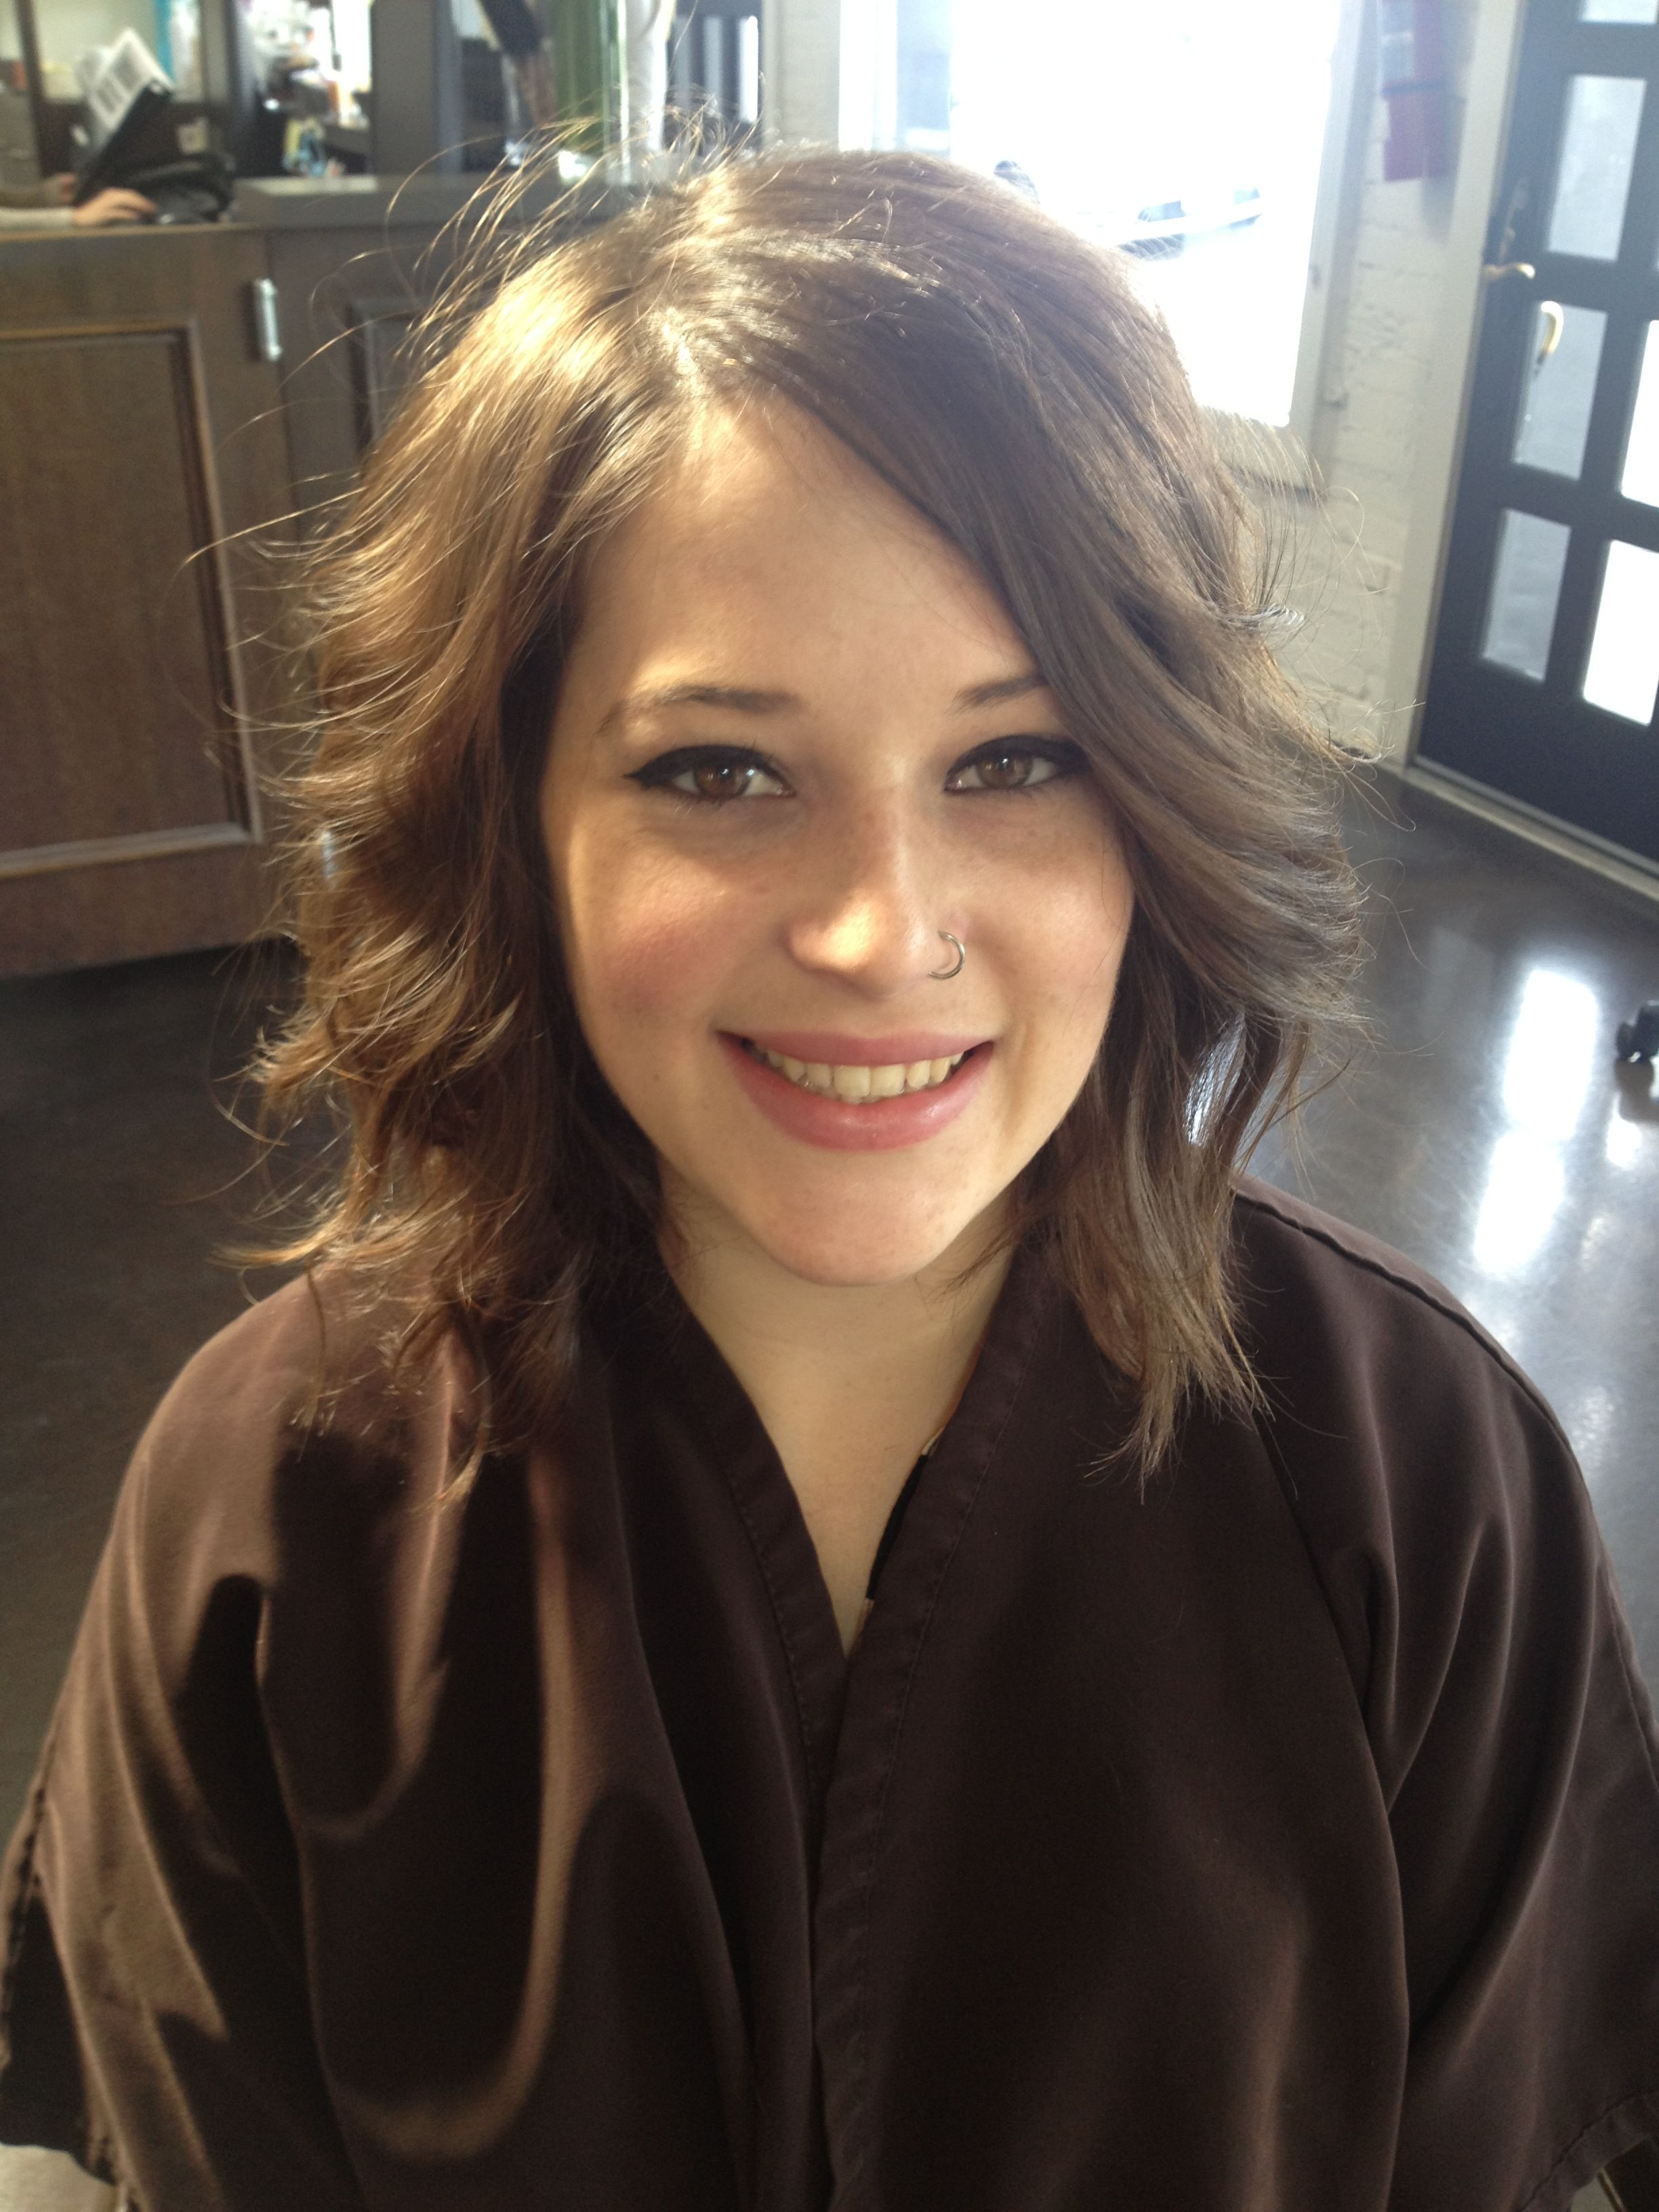 Shoulder Length Hairstyles for Beautiful Women